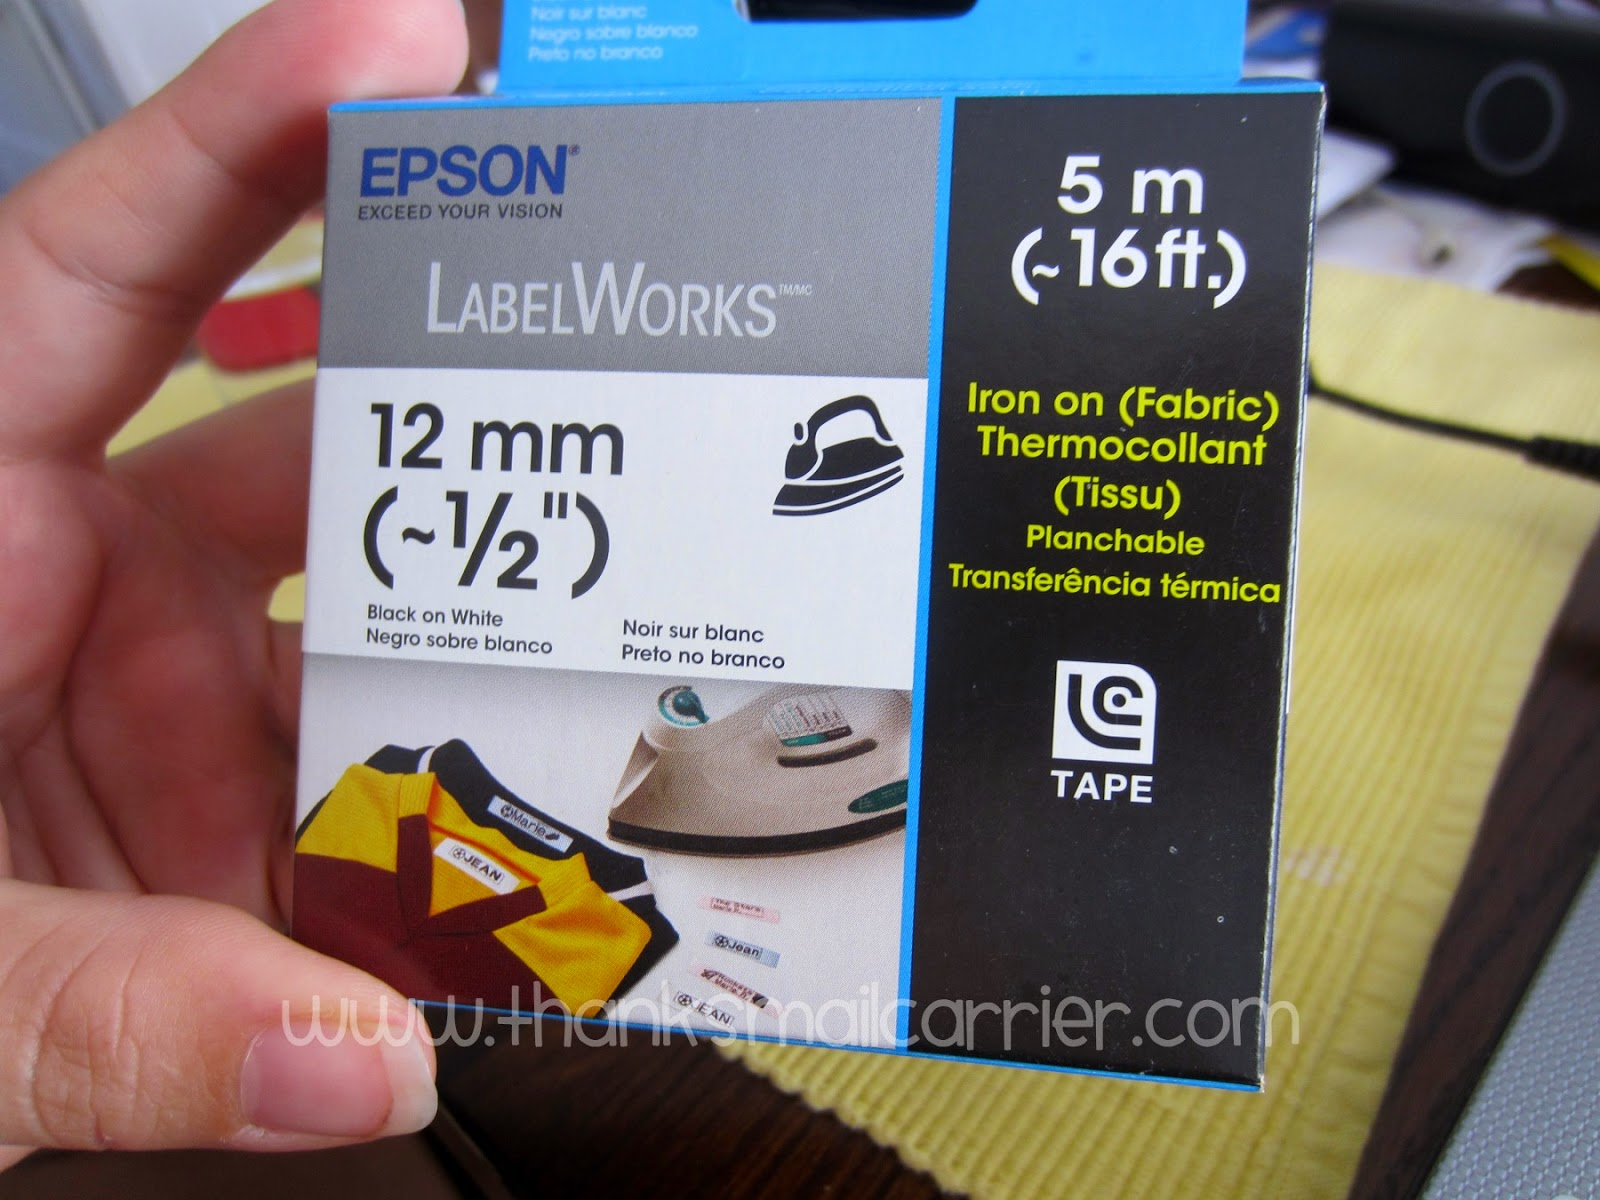 Epson iron on labels